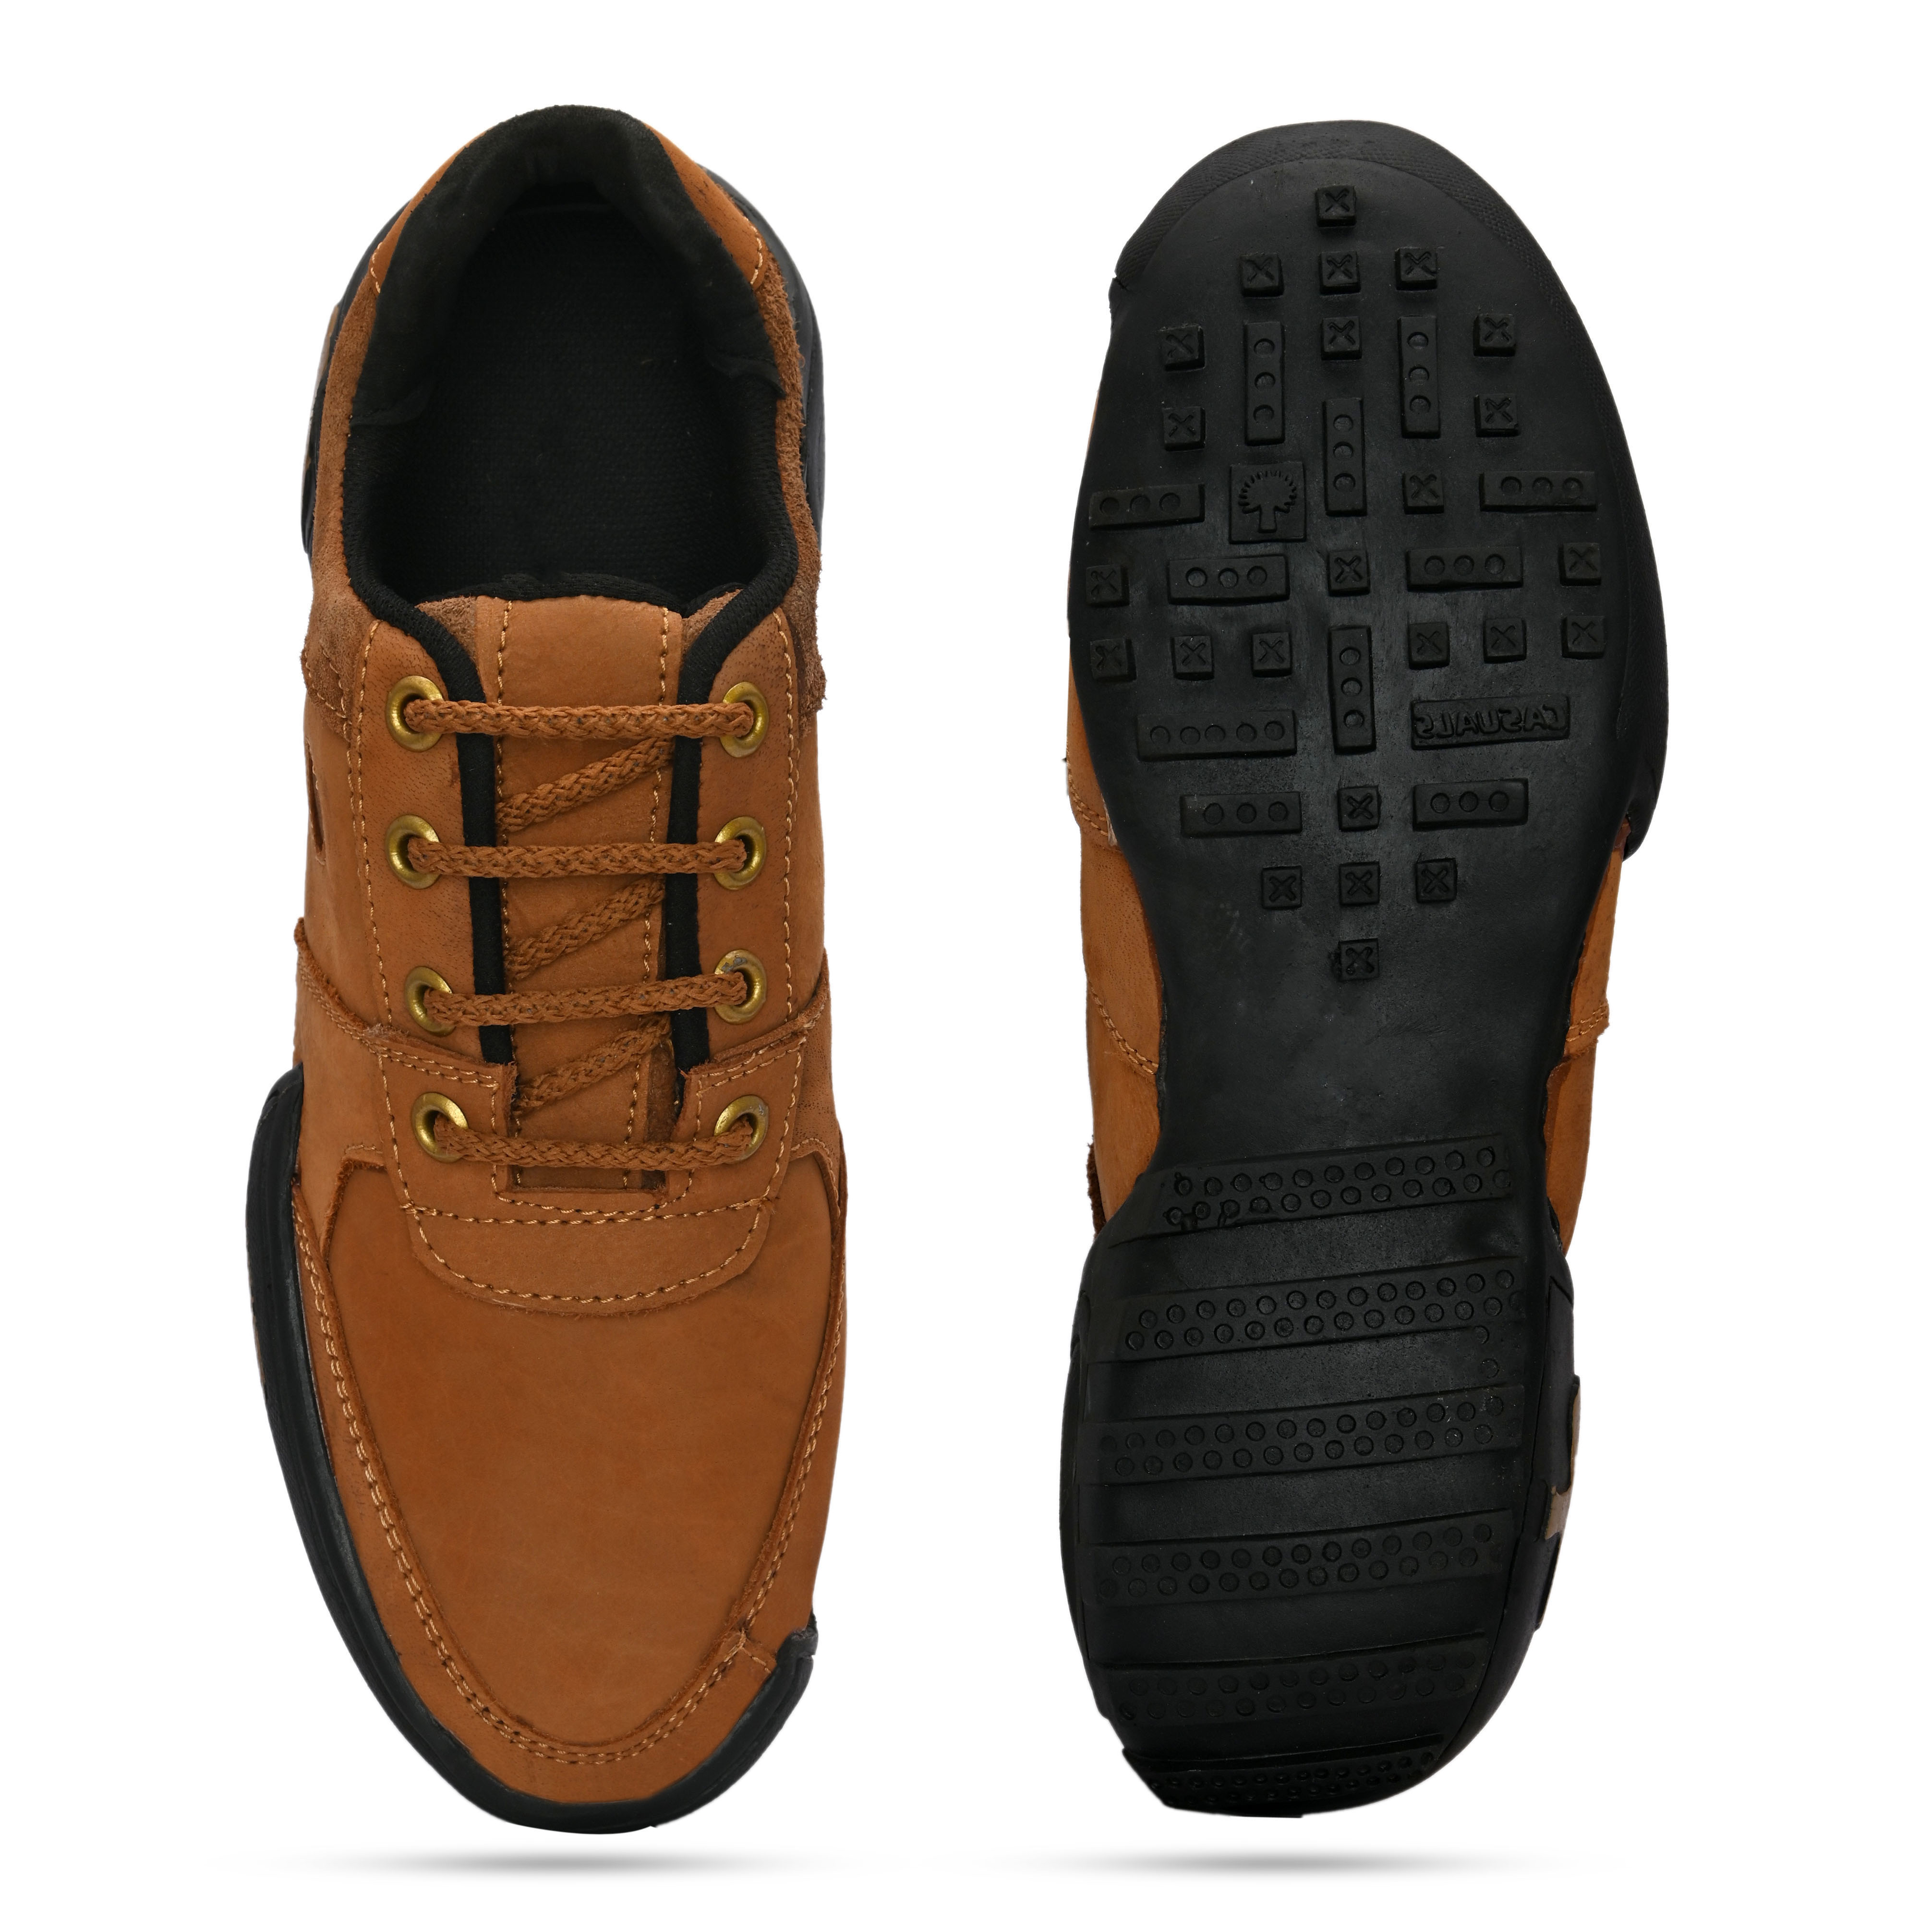 BRIFAR COMFORTABLE & TRENDY FULL LEATHER CASUAL SHOES ARE RELIABLE FOR ANY BFLT011BRN (BROWN, 6-9, PAIR'S)